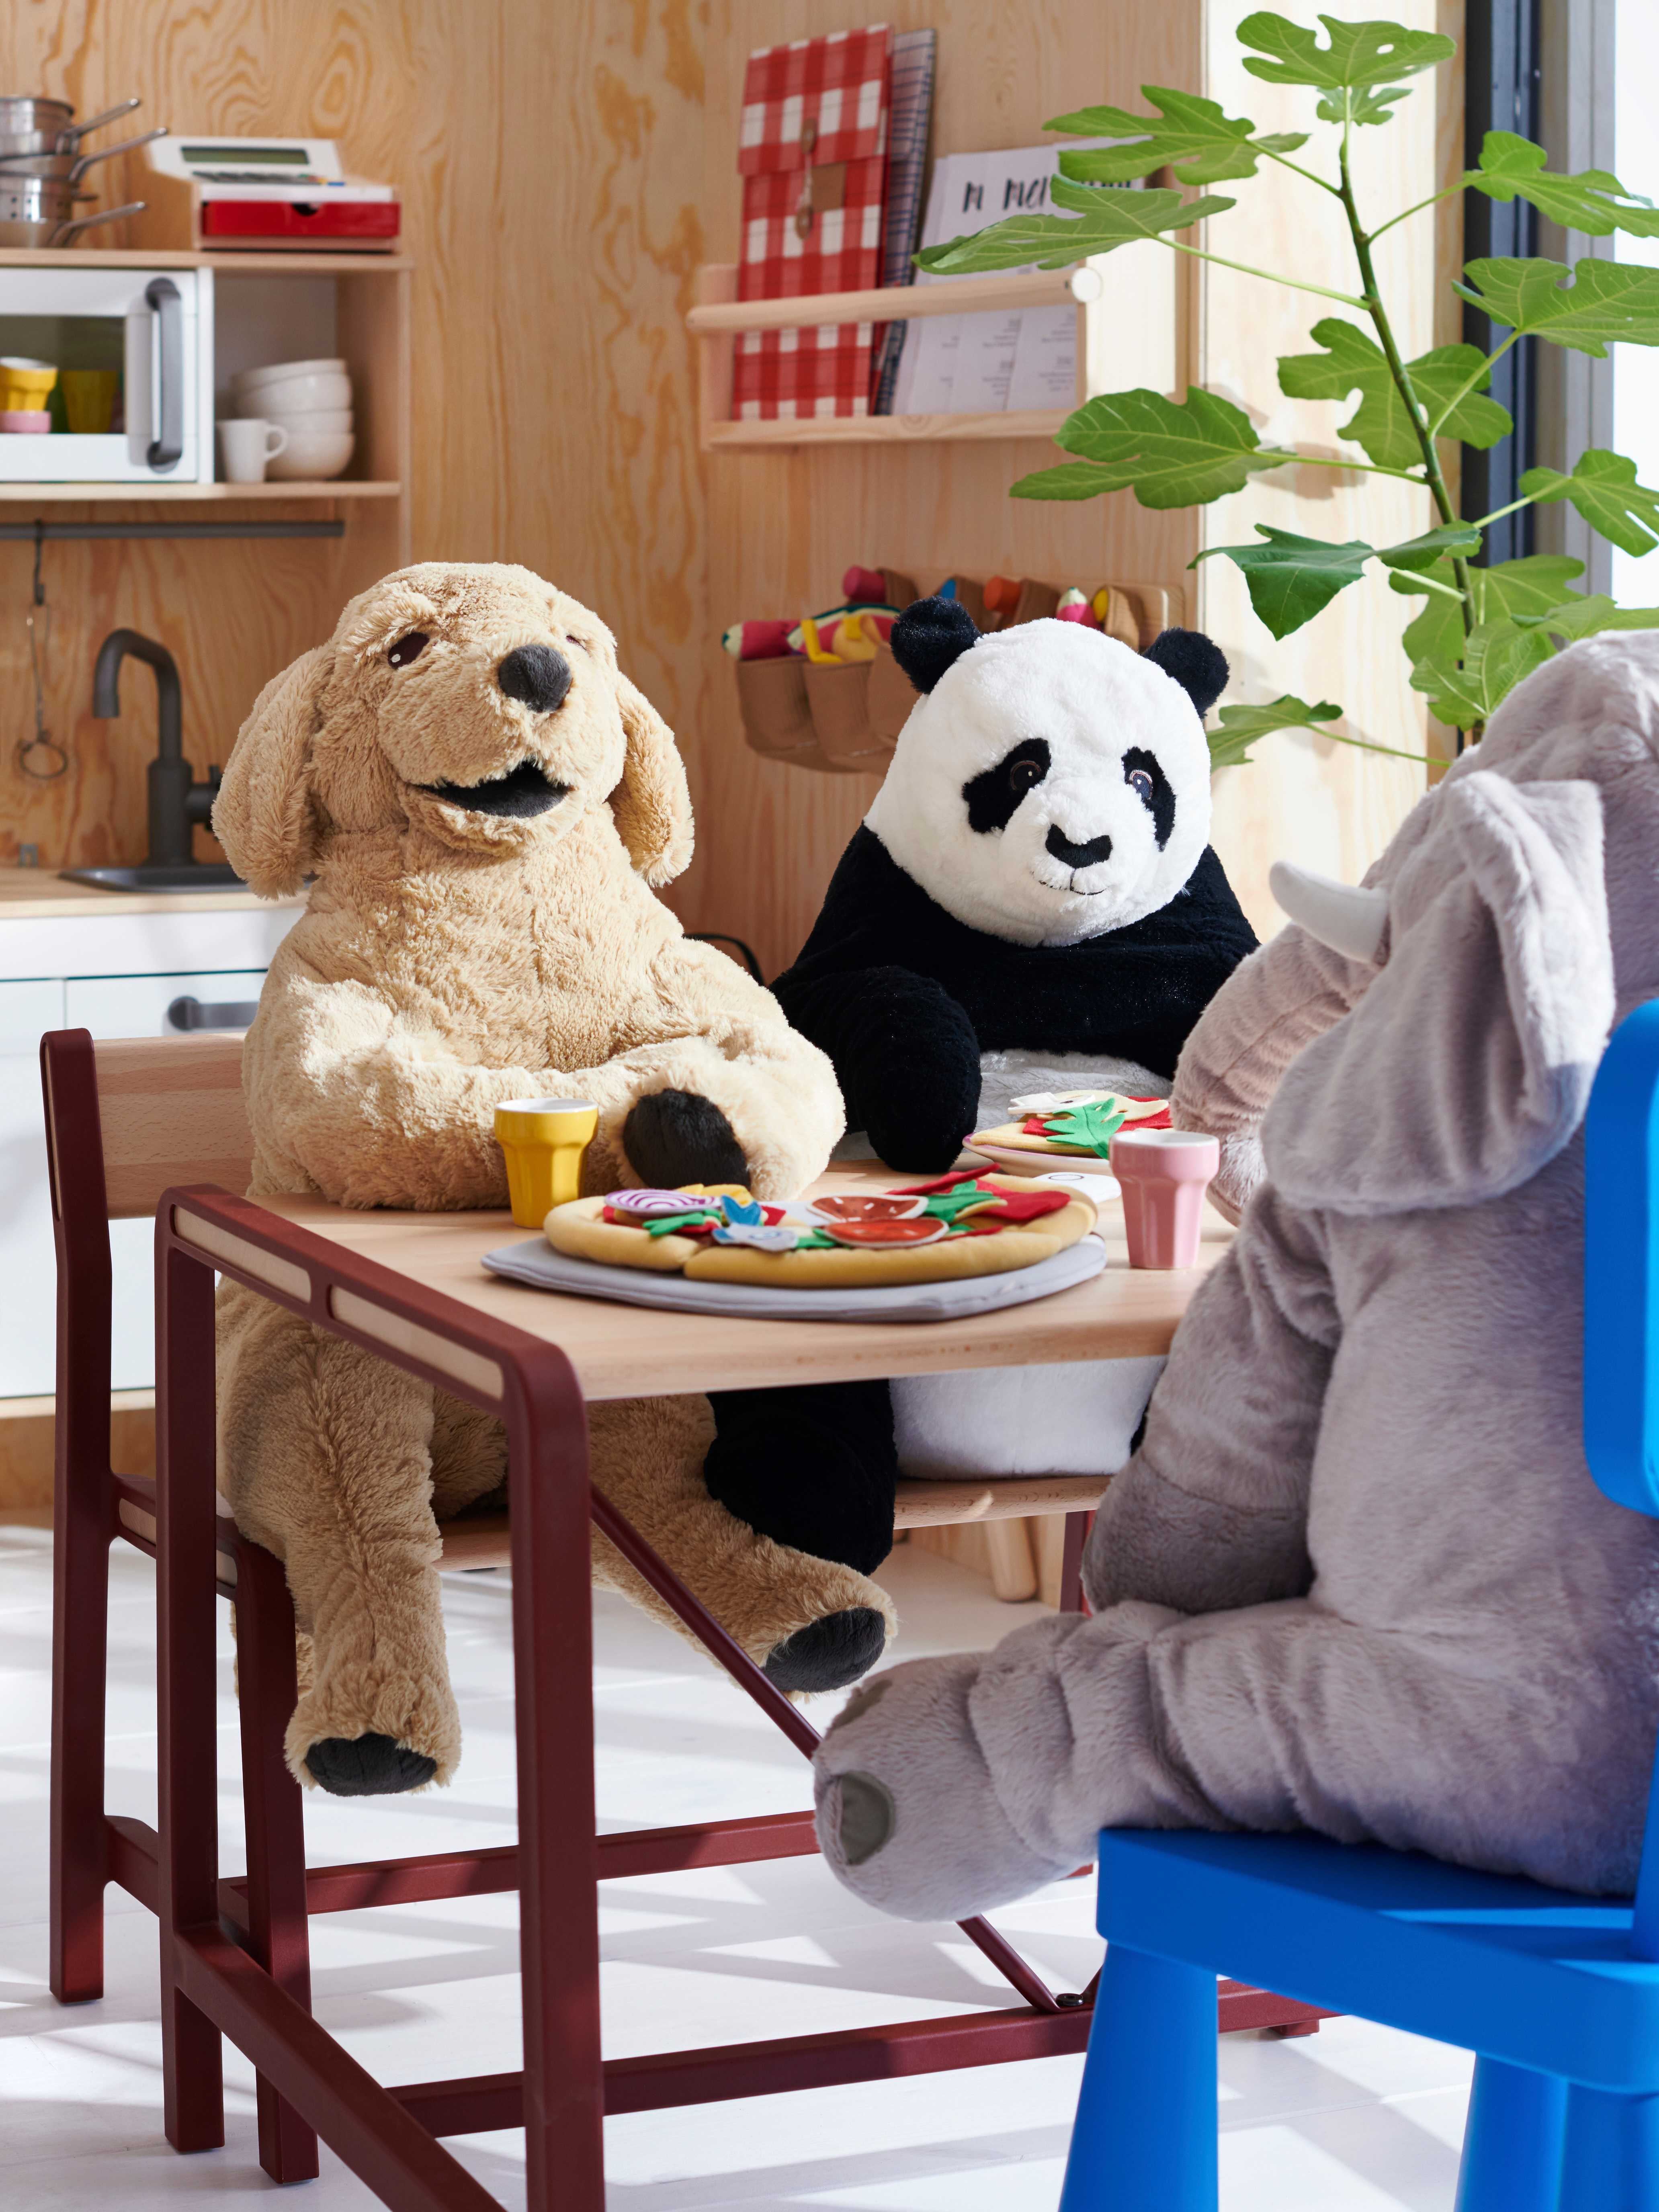 A children's room with elephant, panda and dog soft toys sitting on a bench and MAMMUT chair at YPPERLIG children's table.